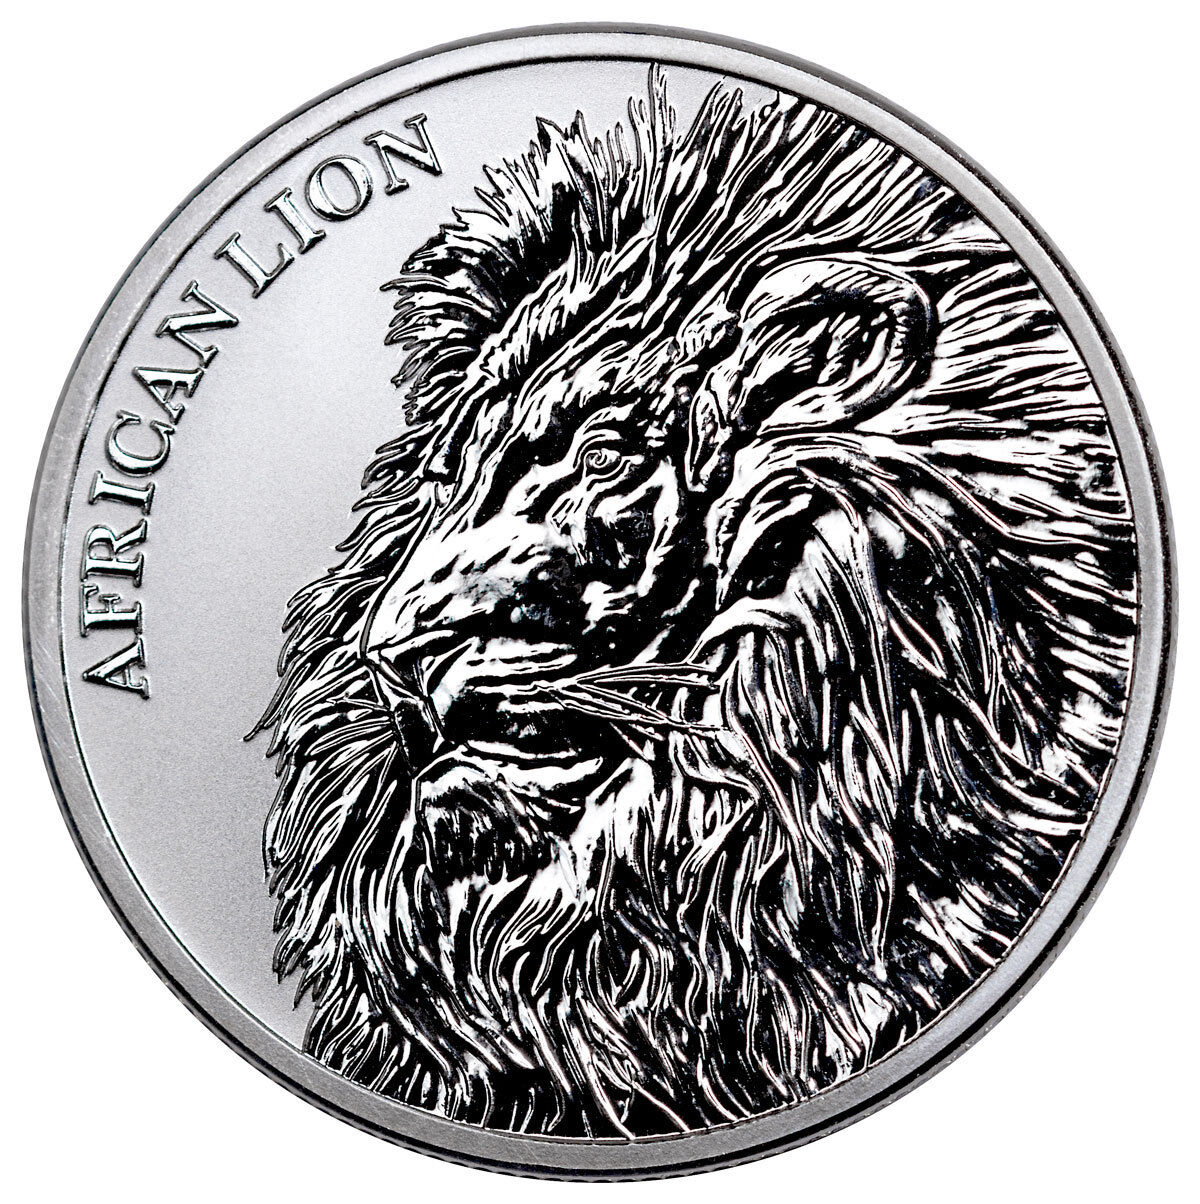 2018 Republic of Chad African Lion 1 oz Silver Fr5,000 Coin BU SKU51641